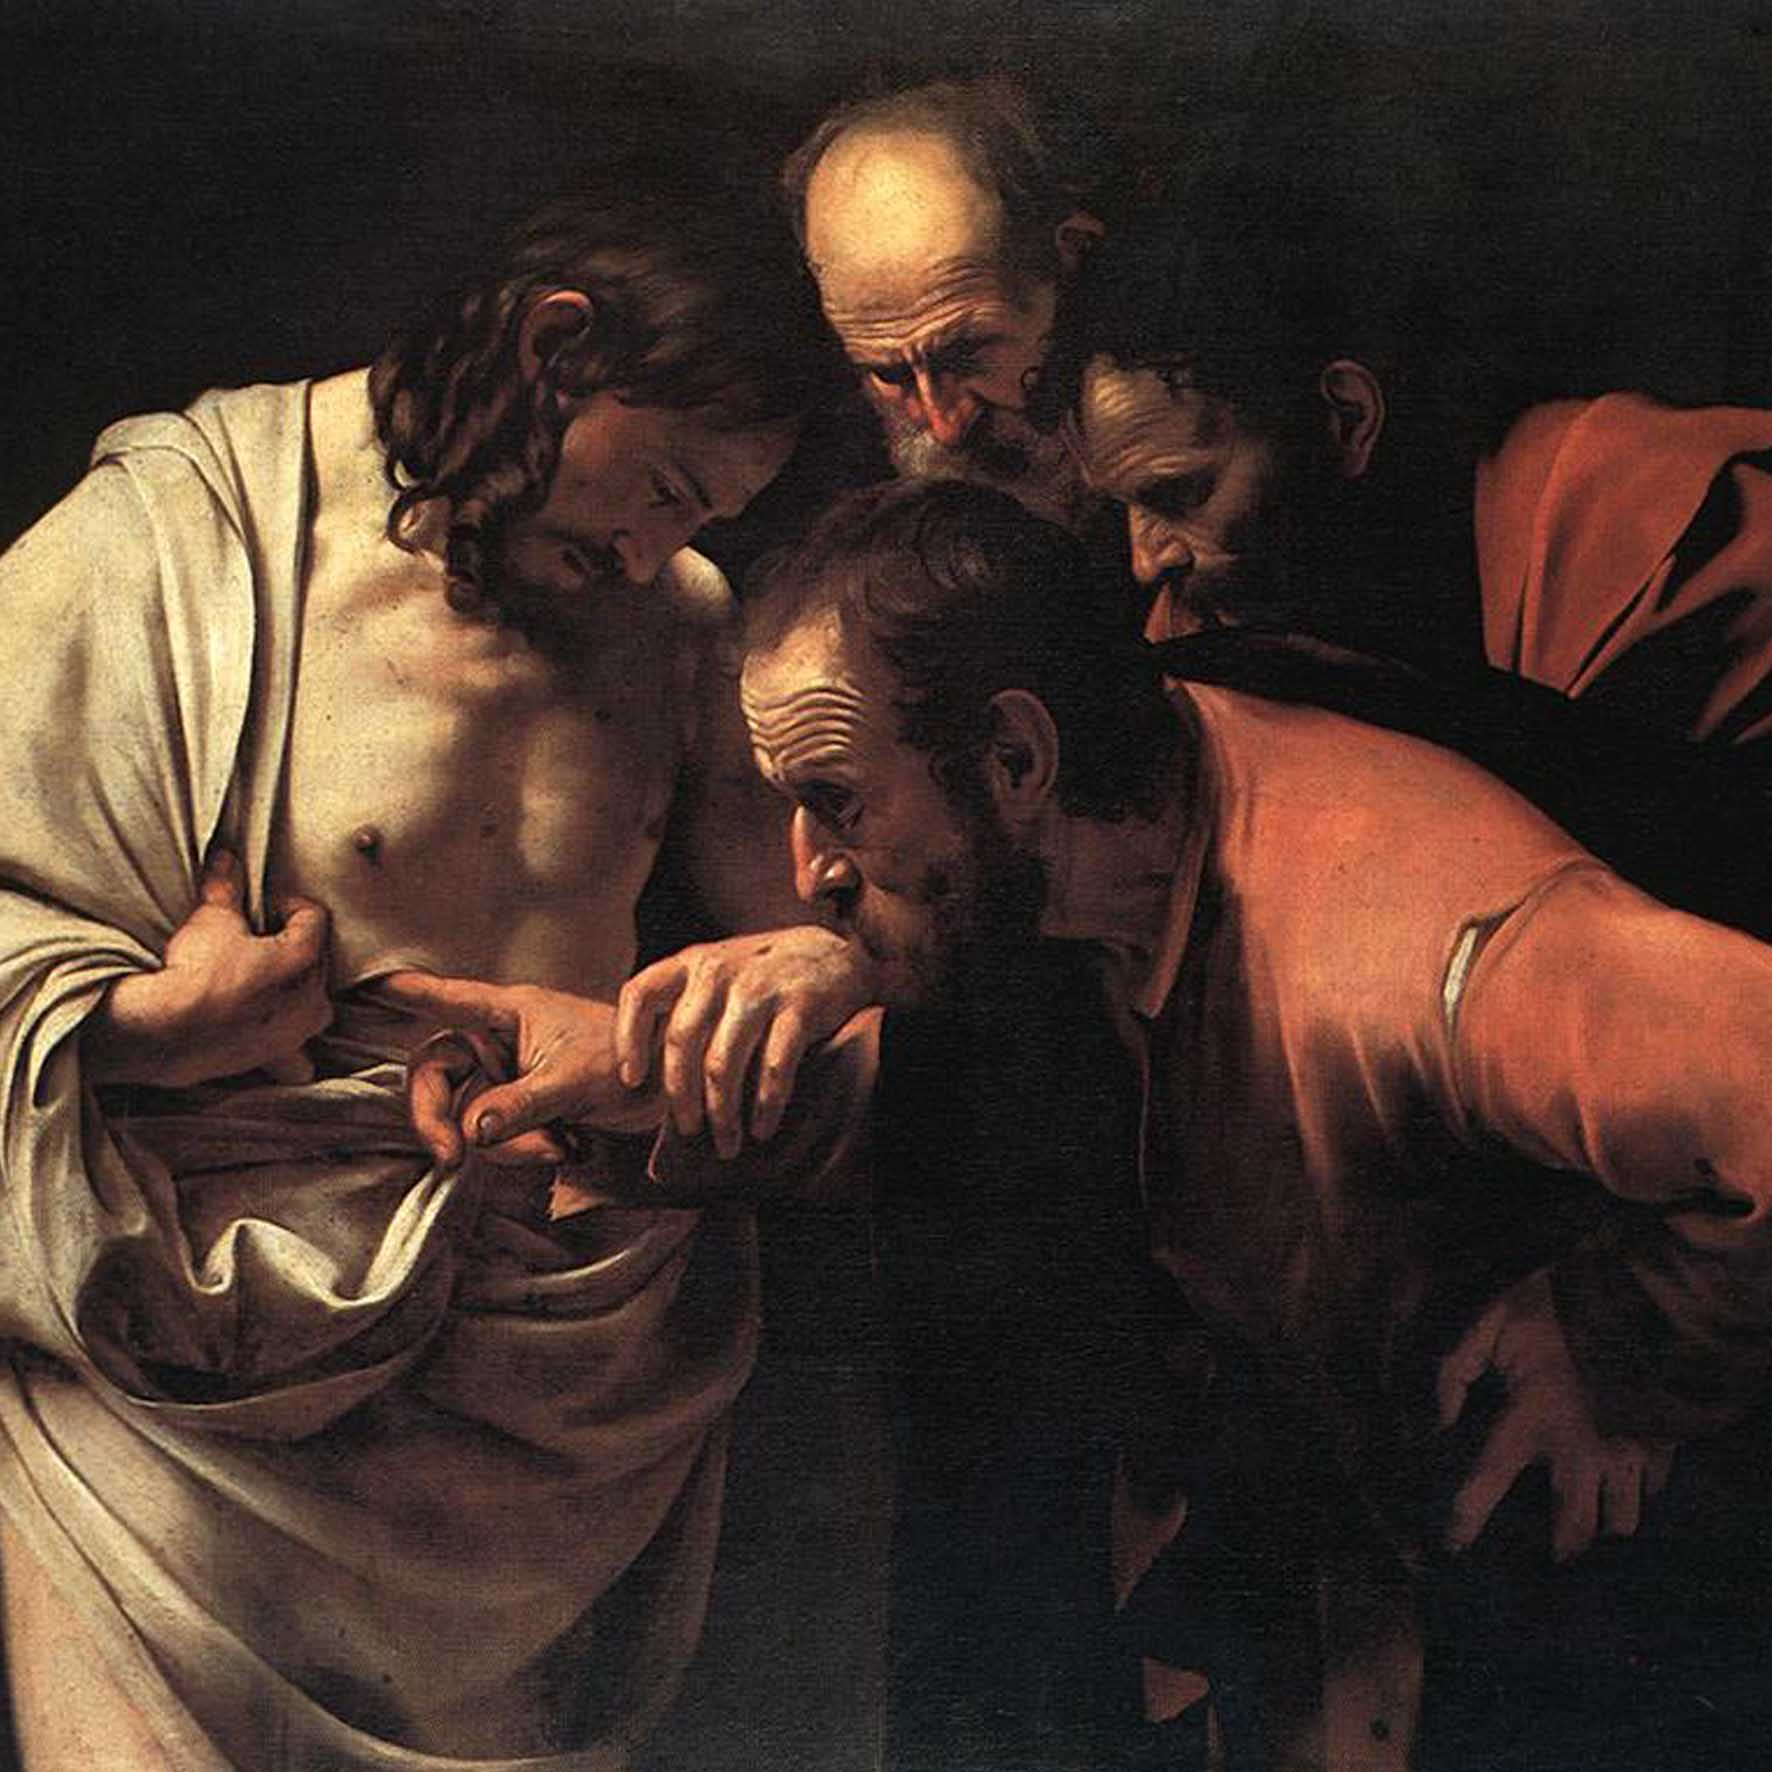 CARAVAGGIO AND THE GIUSTINIANI COLLECTION